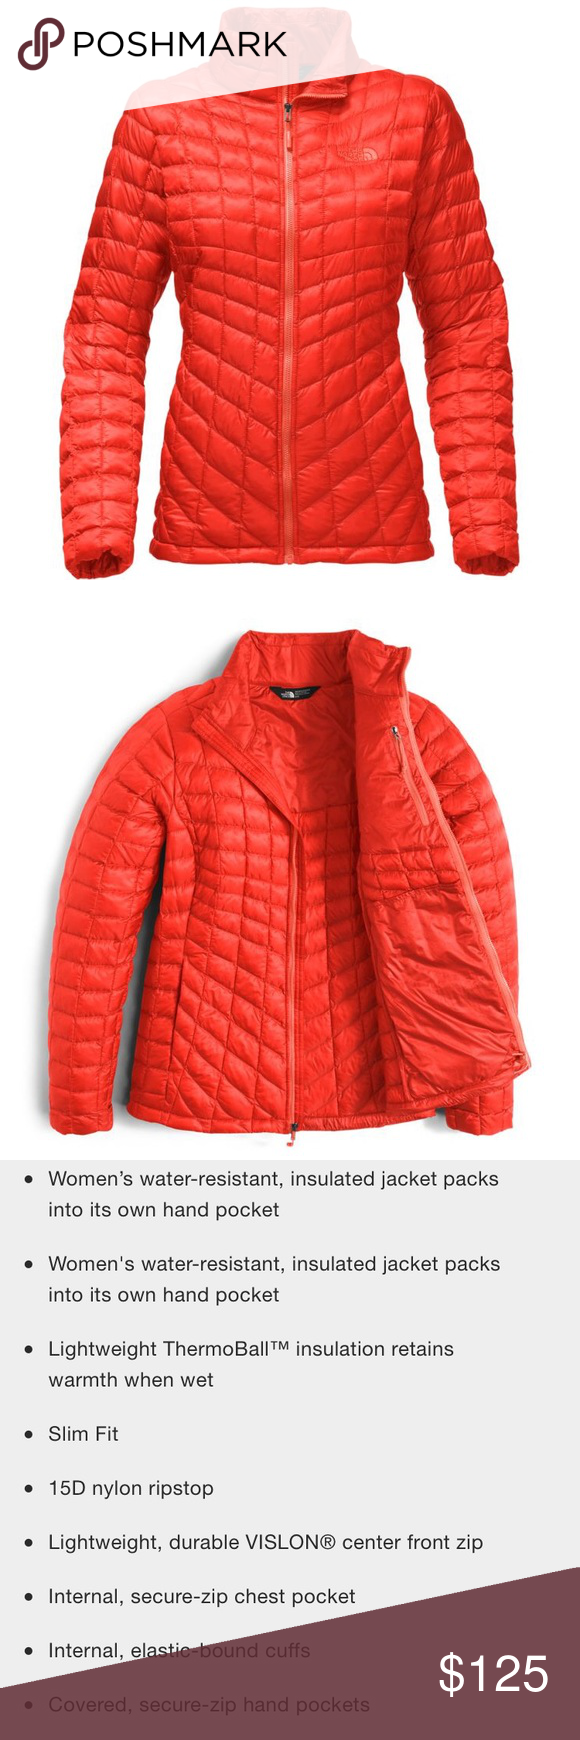 North Face Thermoball Jacket North Face Thermoball Jacket Jackets Clothes Design [ 1740 x 580 Pixel ]